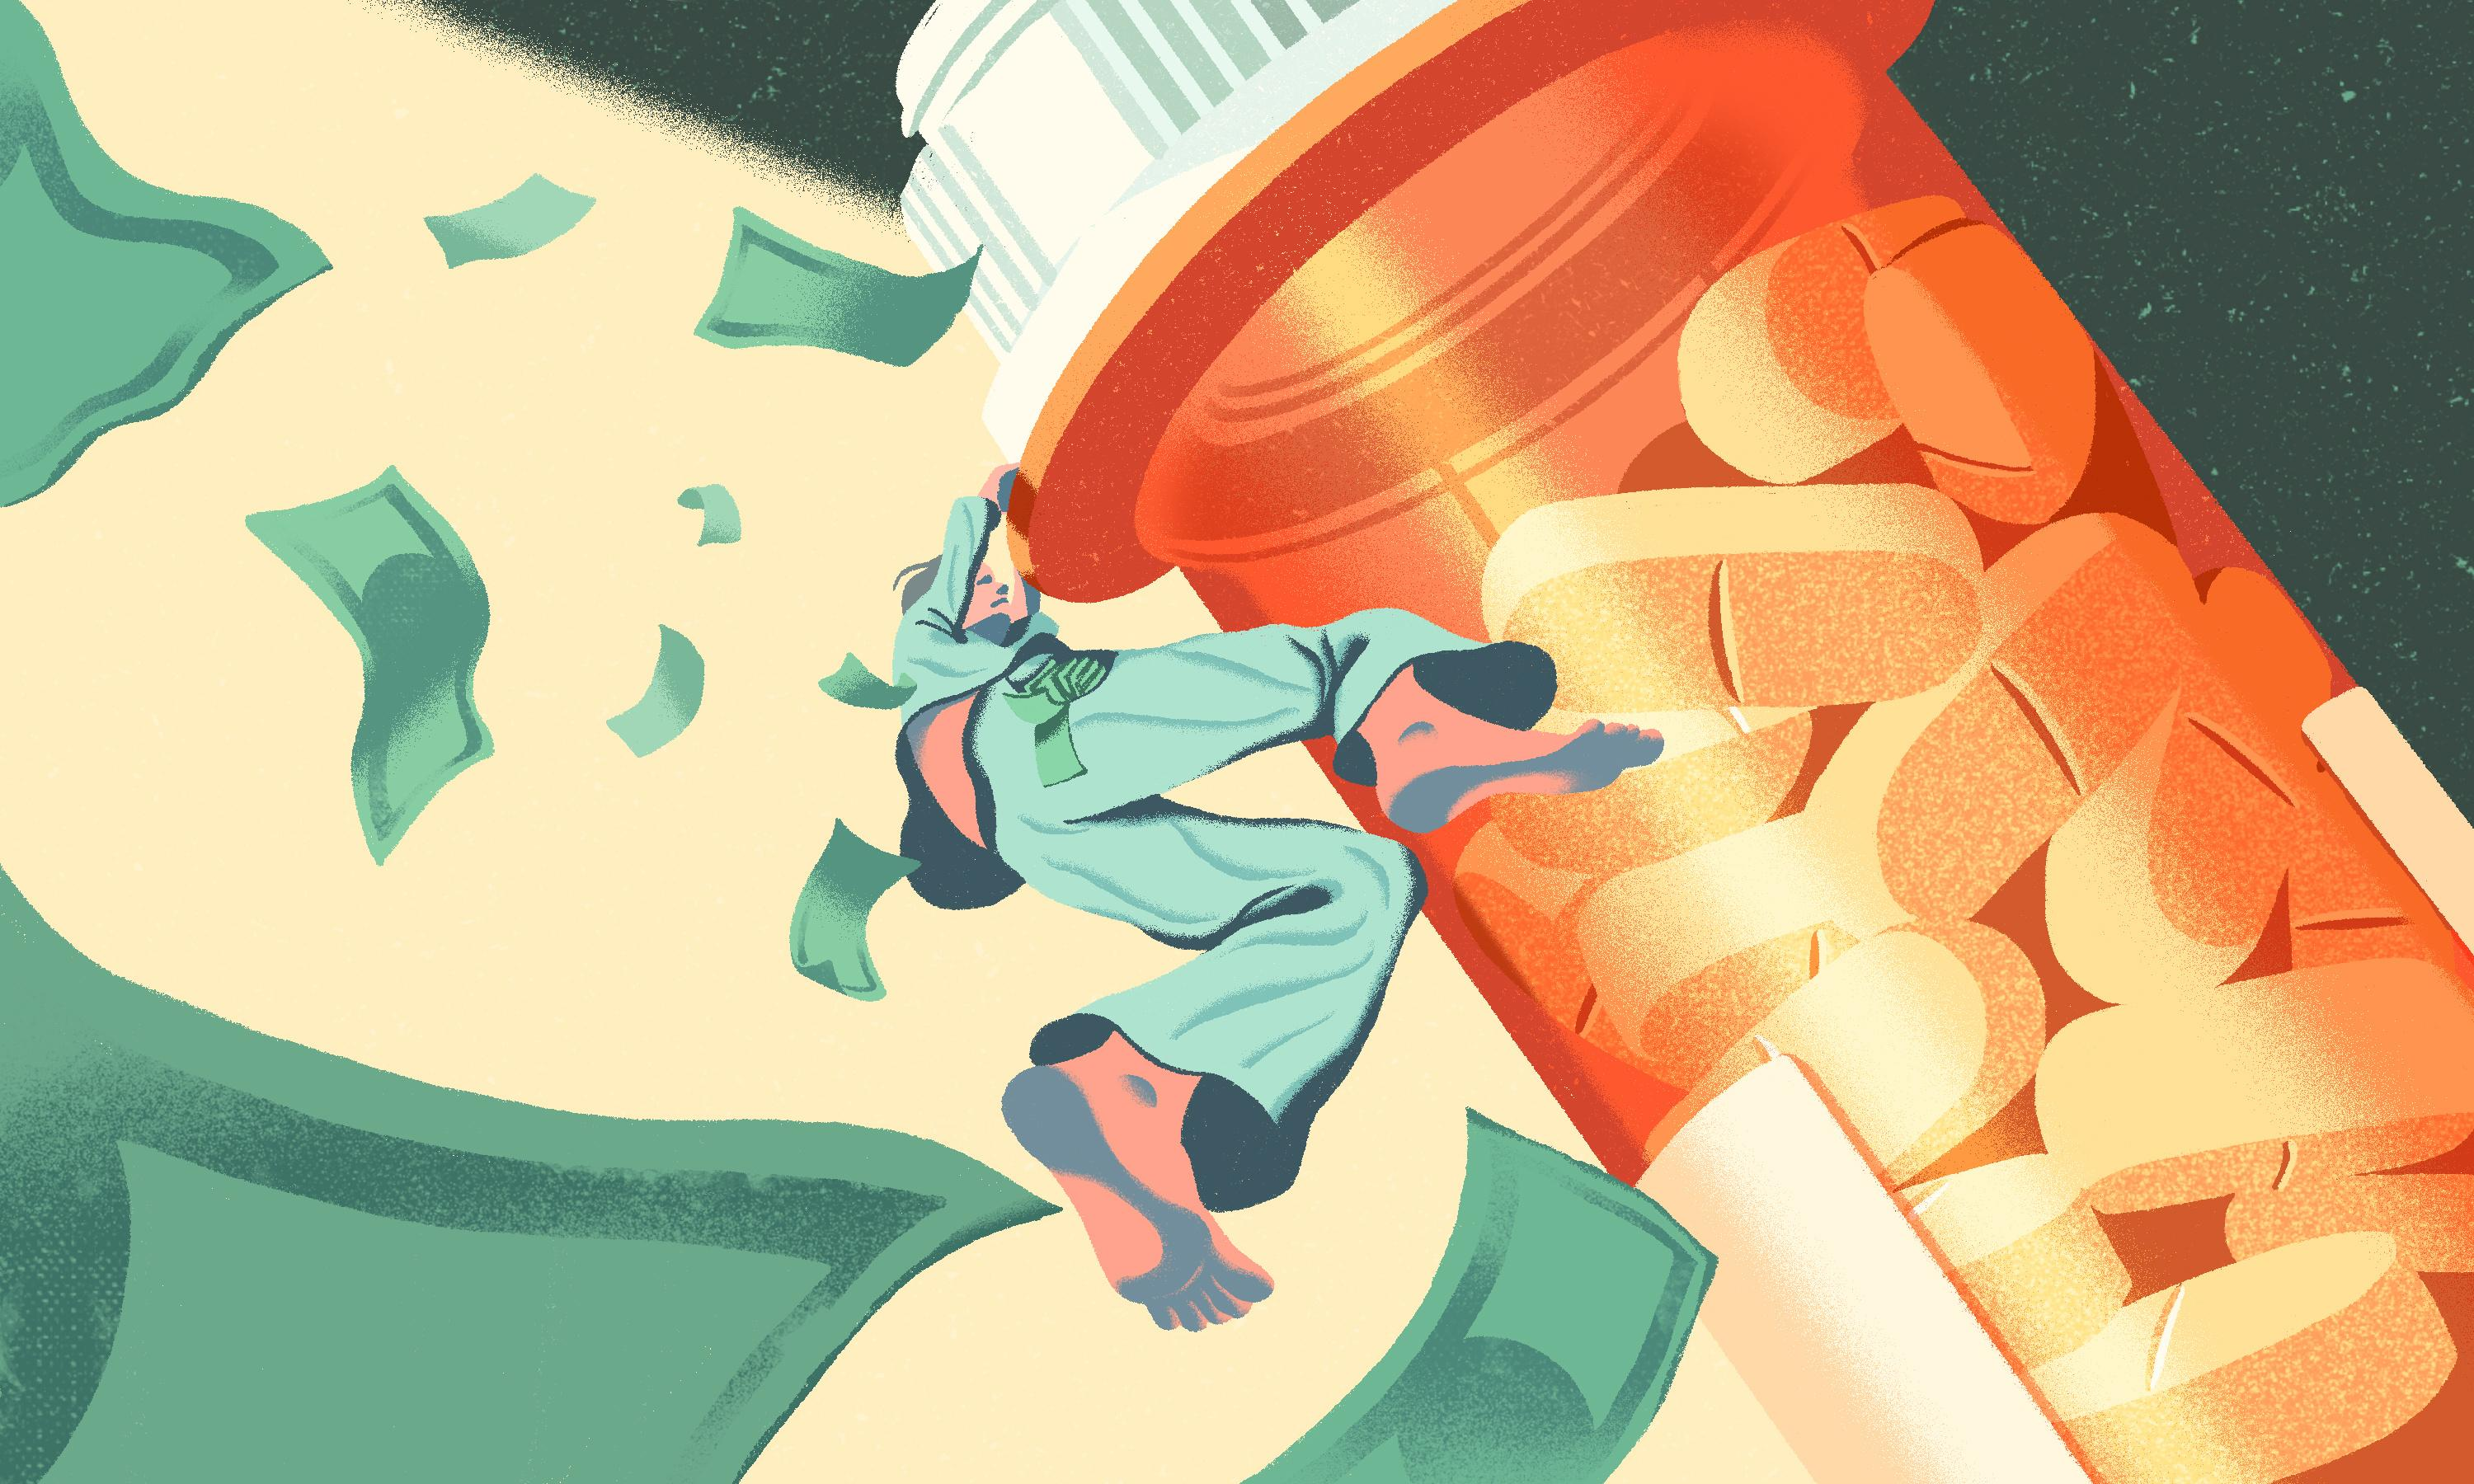 The Americans forced into bankruptcy to pay for prescriptions